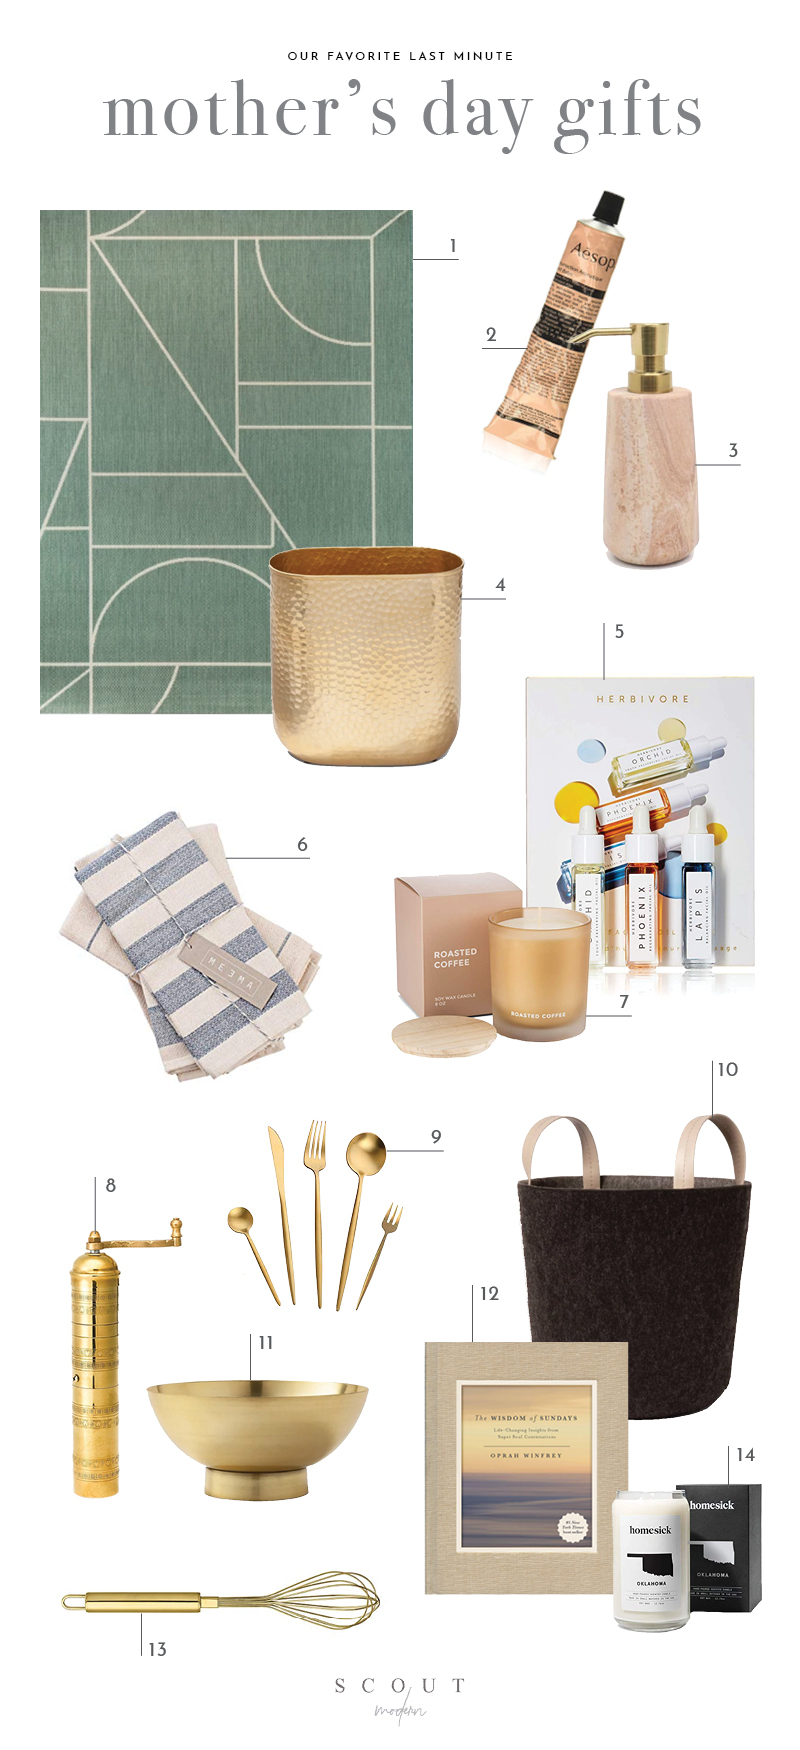 1.  Outdoor Rug  | 2.  Aesop Hand Balm  | 3.  Sandstone Soap Dispenser  | 4.  Metal Wastebasket  | 5.  Herbivore Mini Facial Oil Trio  | 6.  Upcycled Tea Towels  | 7.  Roasted Coffee Candle  | 8.  Brass Pepper Mill  | 9.  Gold Cutlery  | 10.  Basket with Leather Handles  | 11.  Gold Bowl  | 12.  The Wisdom of Sundays  | 13.  Gold Whisk  | 14.  Homesick Candle (Oklahoma)